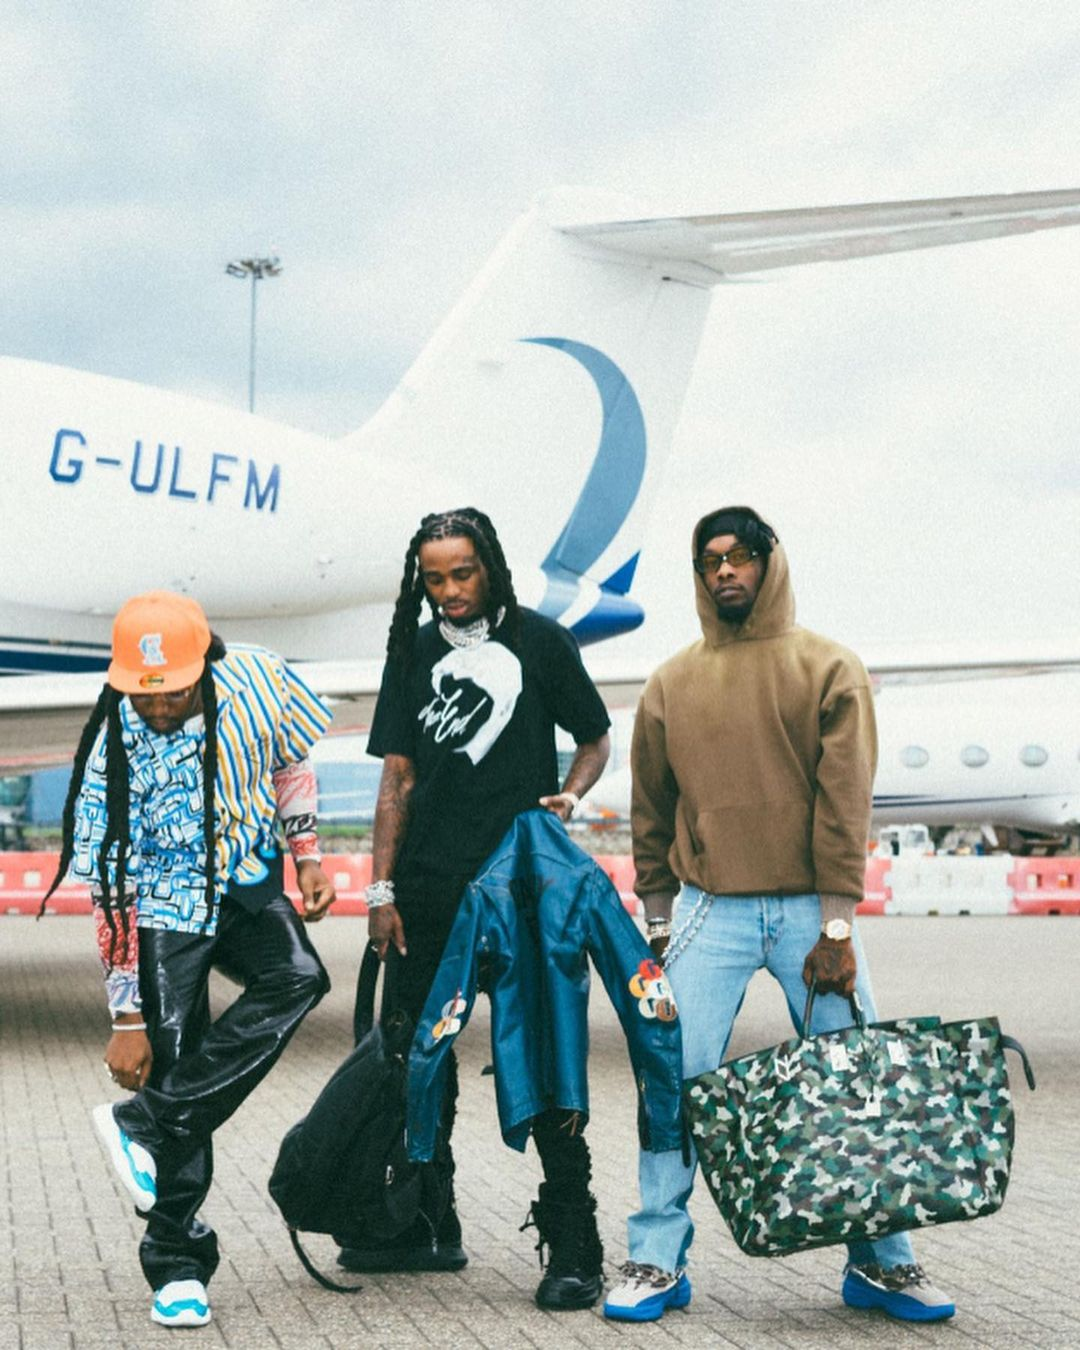 SPOTTED: Migos Flex Their Airport Outfits